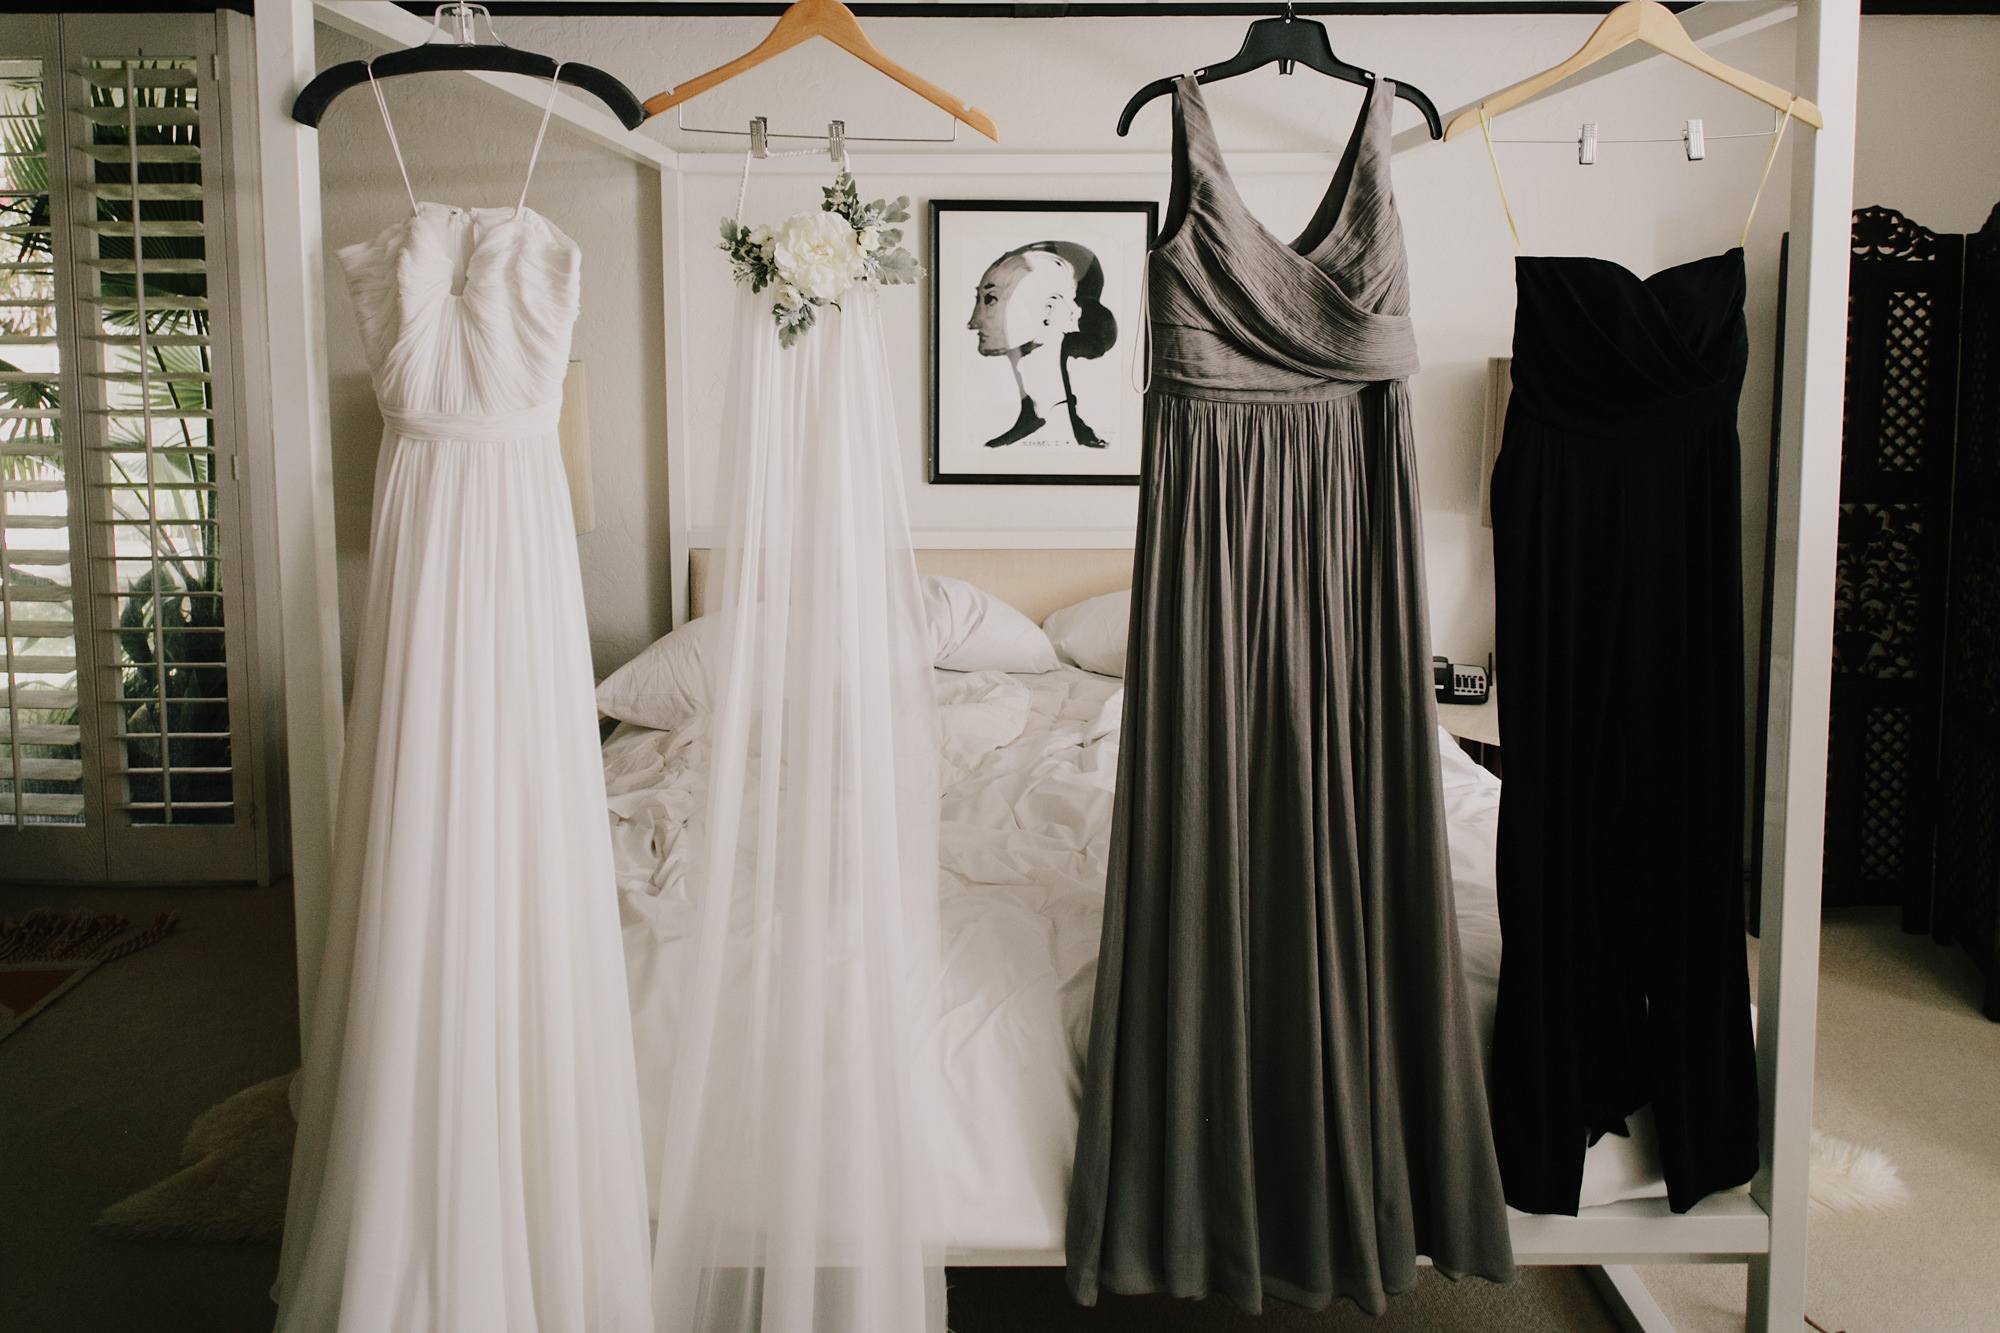 Grey and white bridal trousseau hanging on bed - photo by James Moes